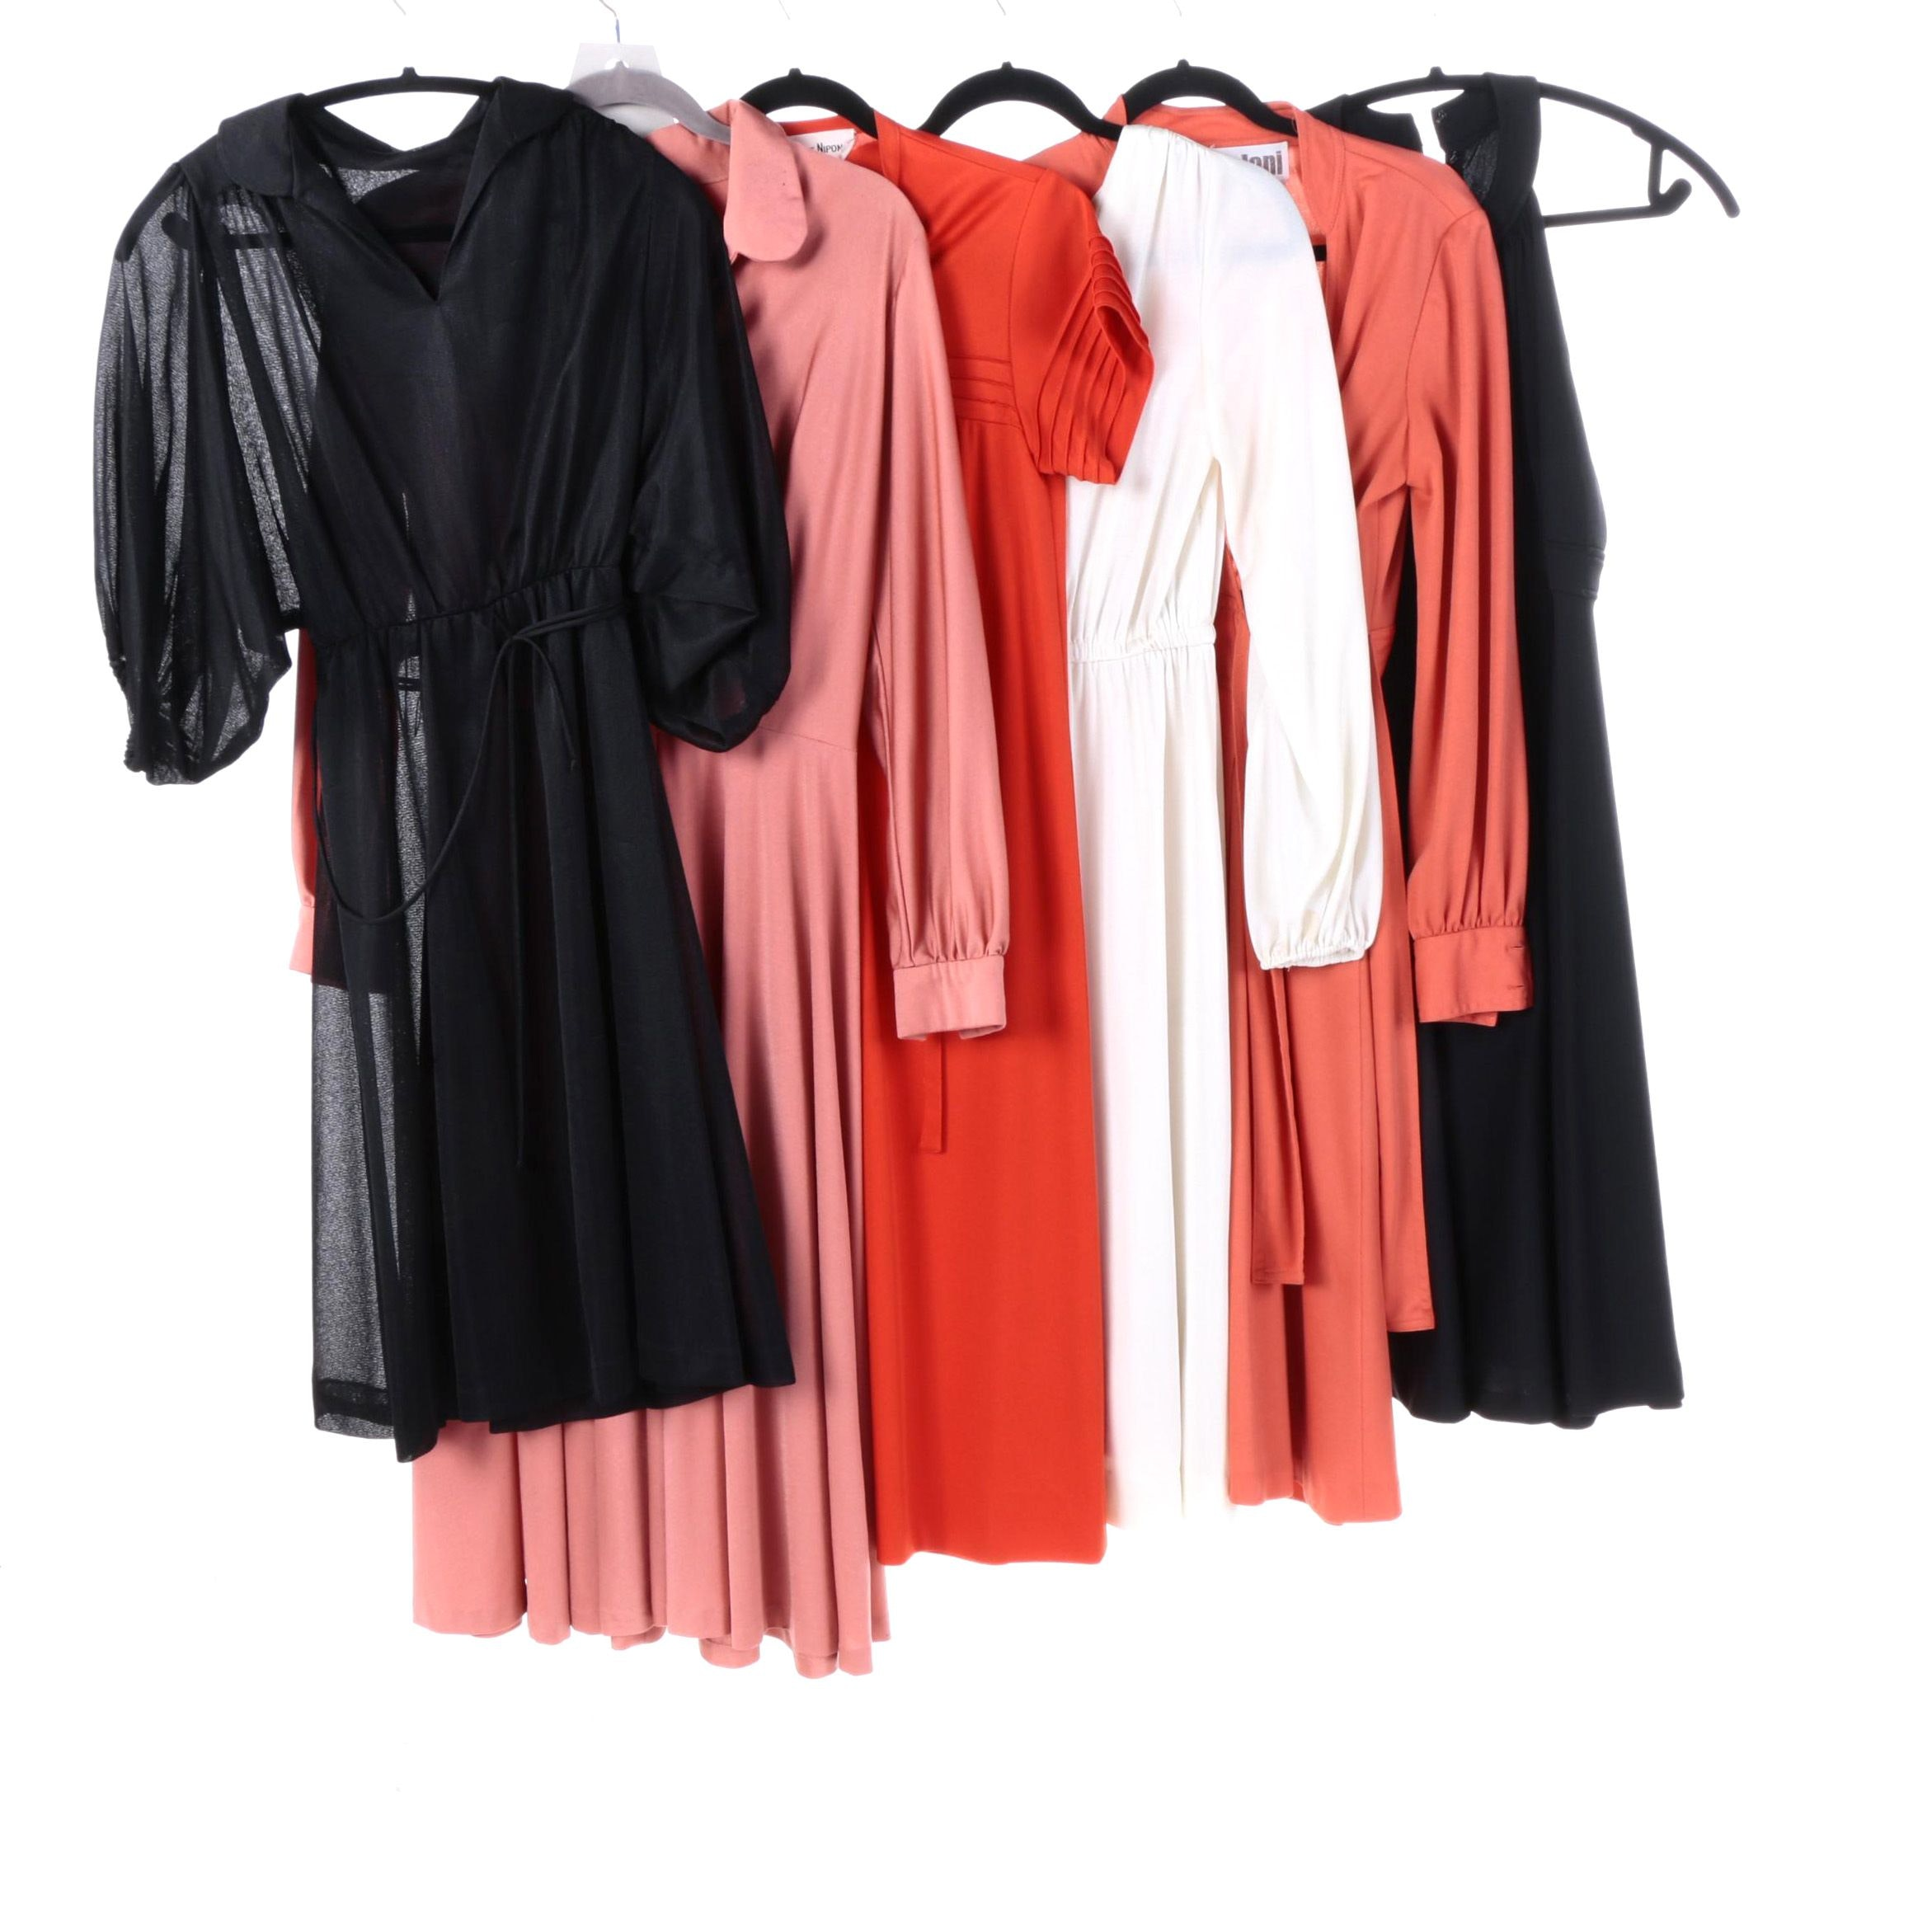 1970s Disco Midi Dresses Including Albert Nipon